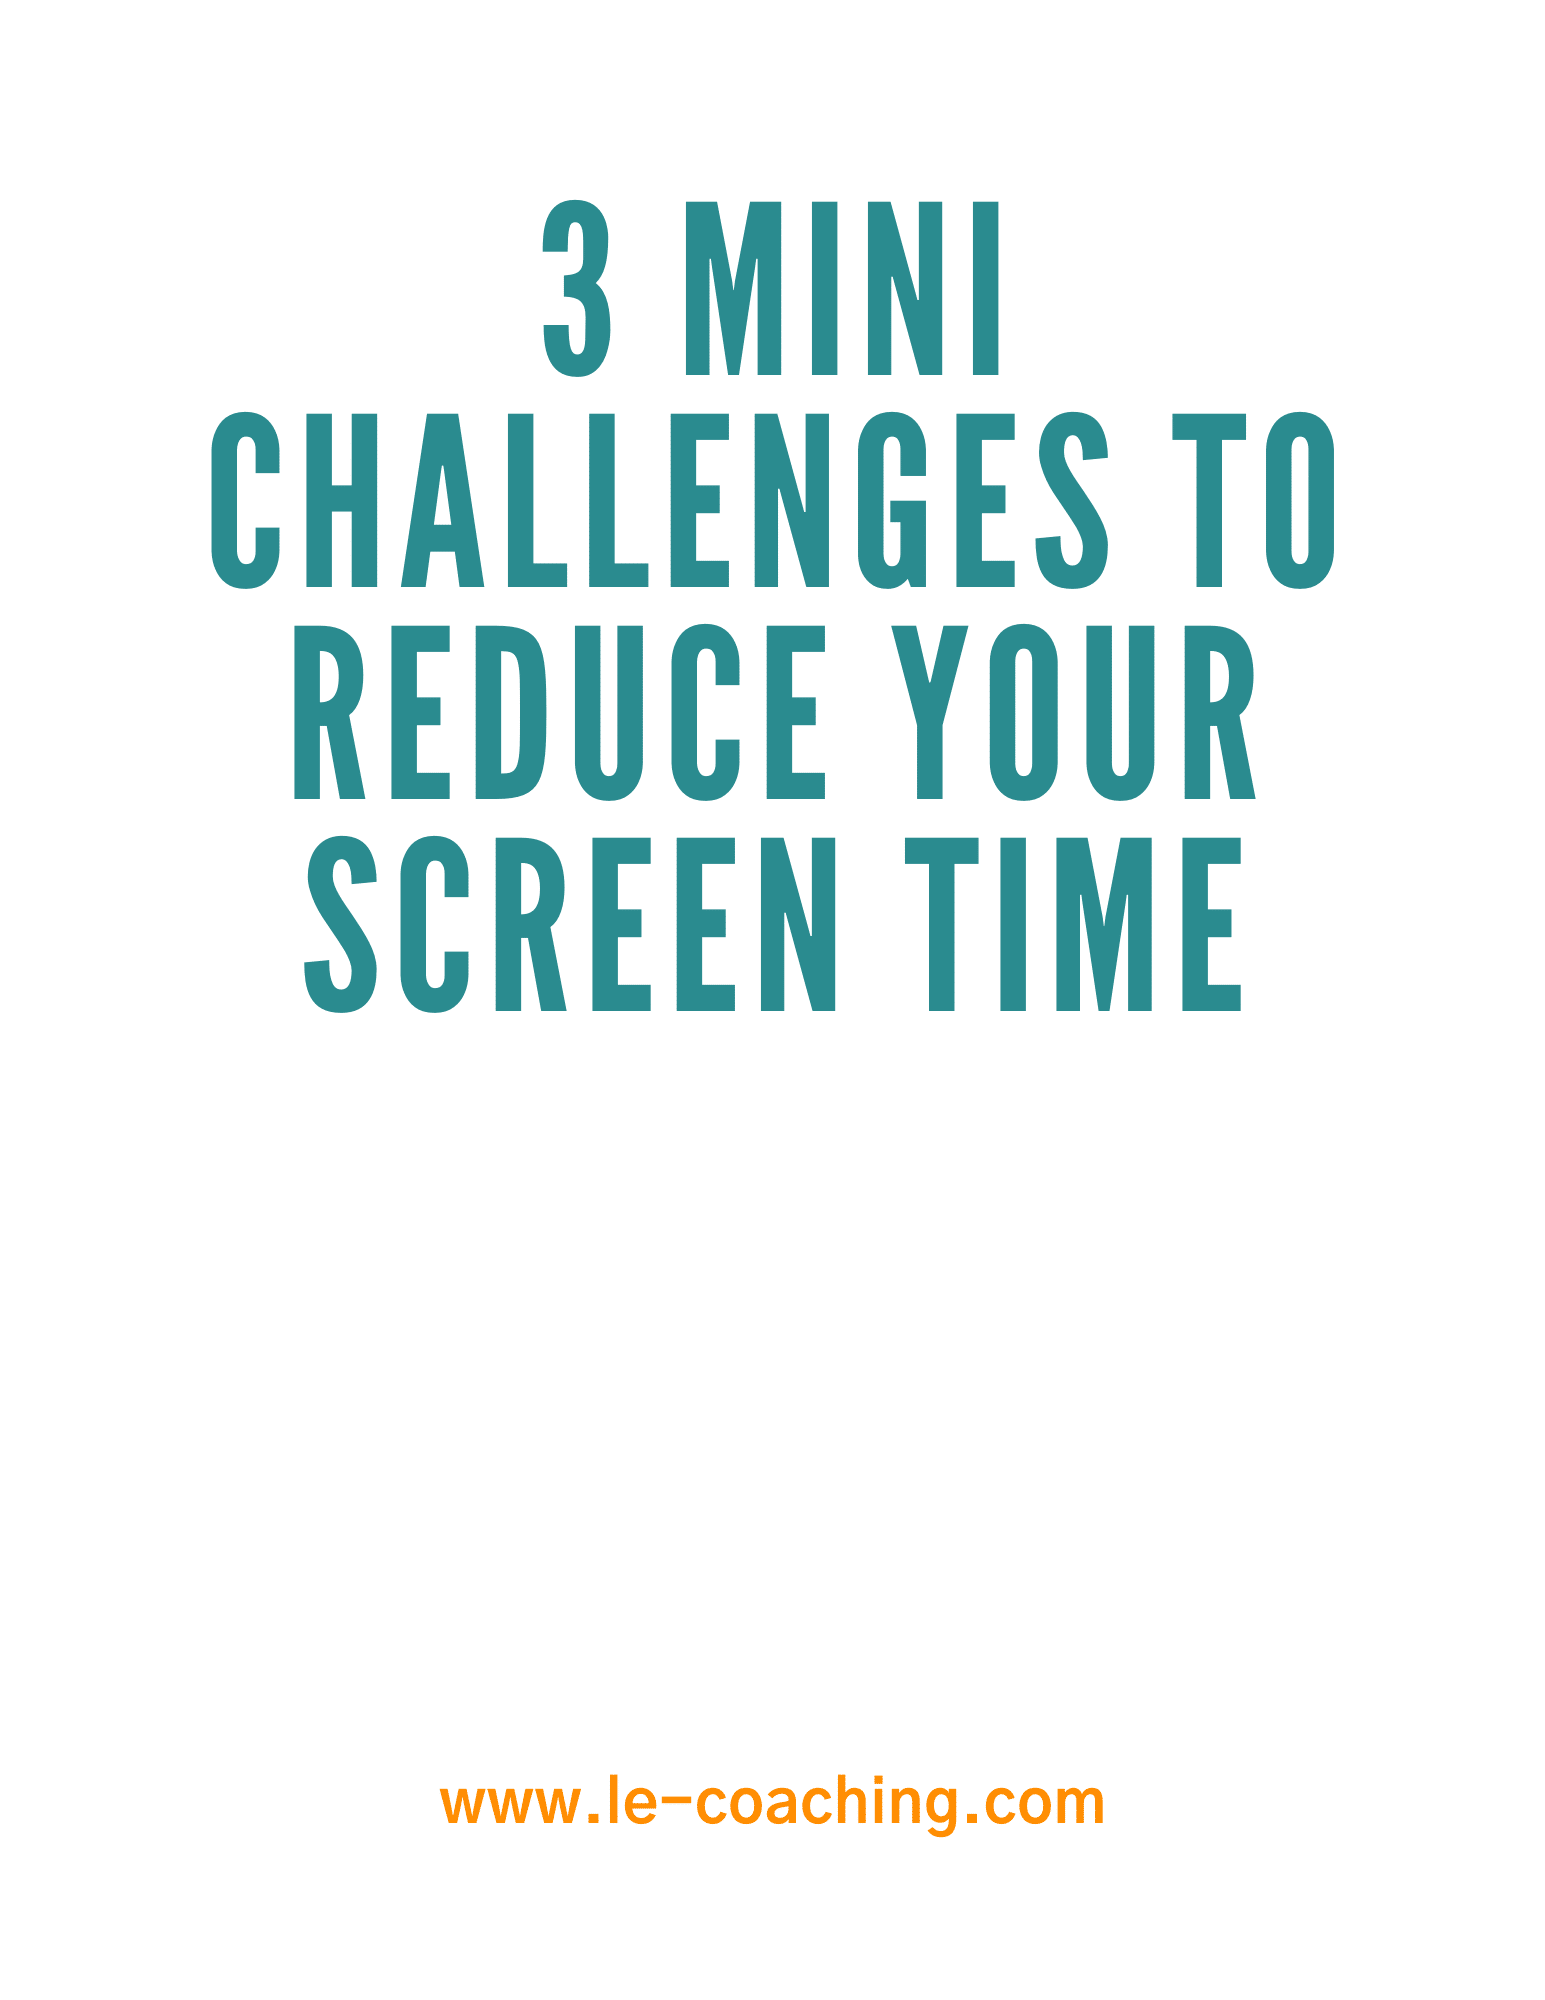 3 mini challenges to reduce your screen time